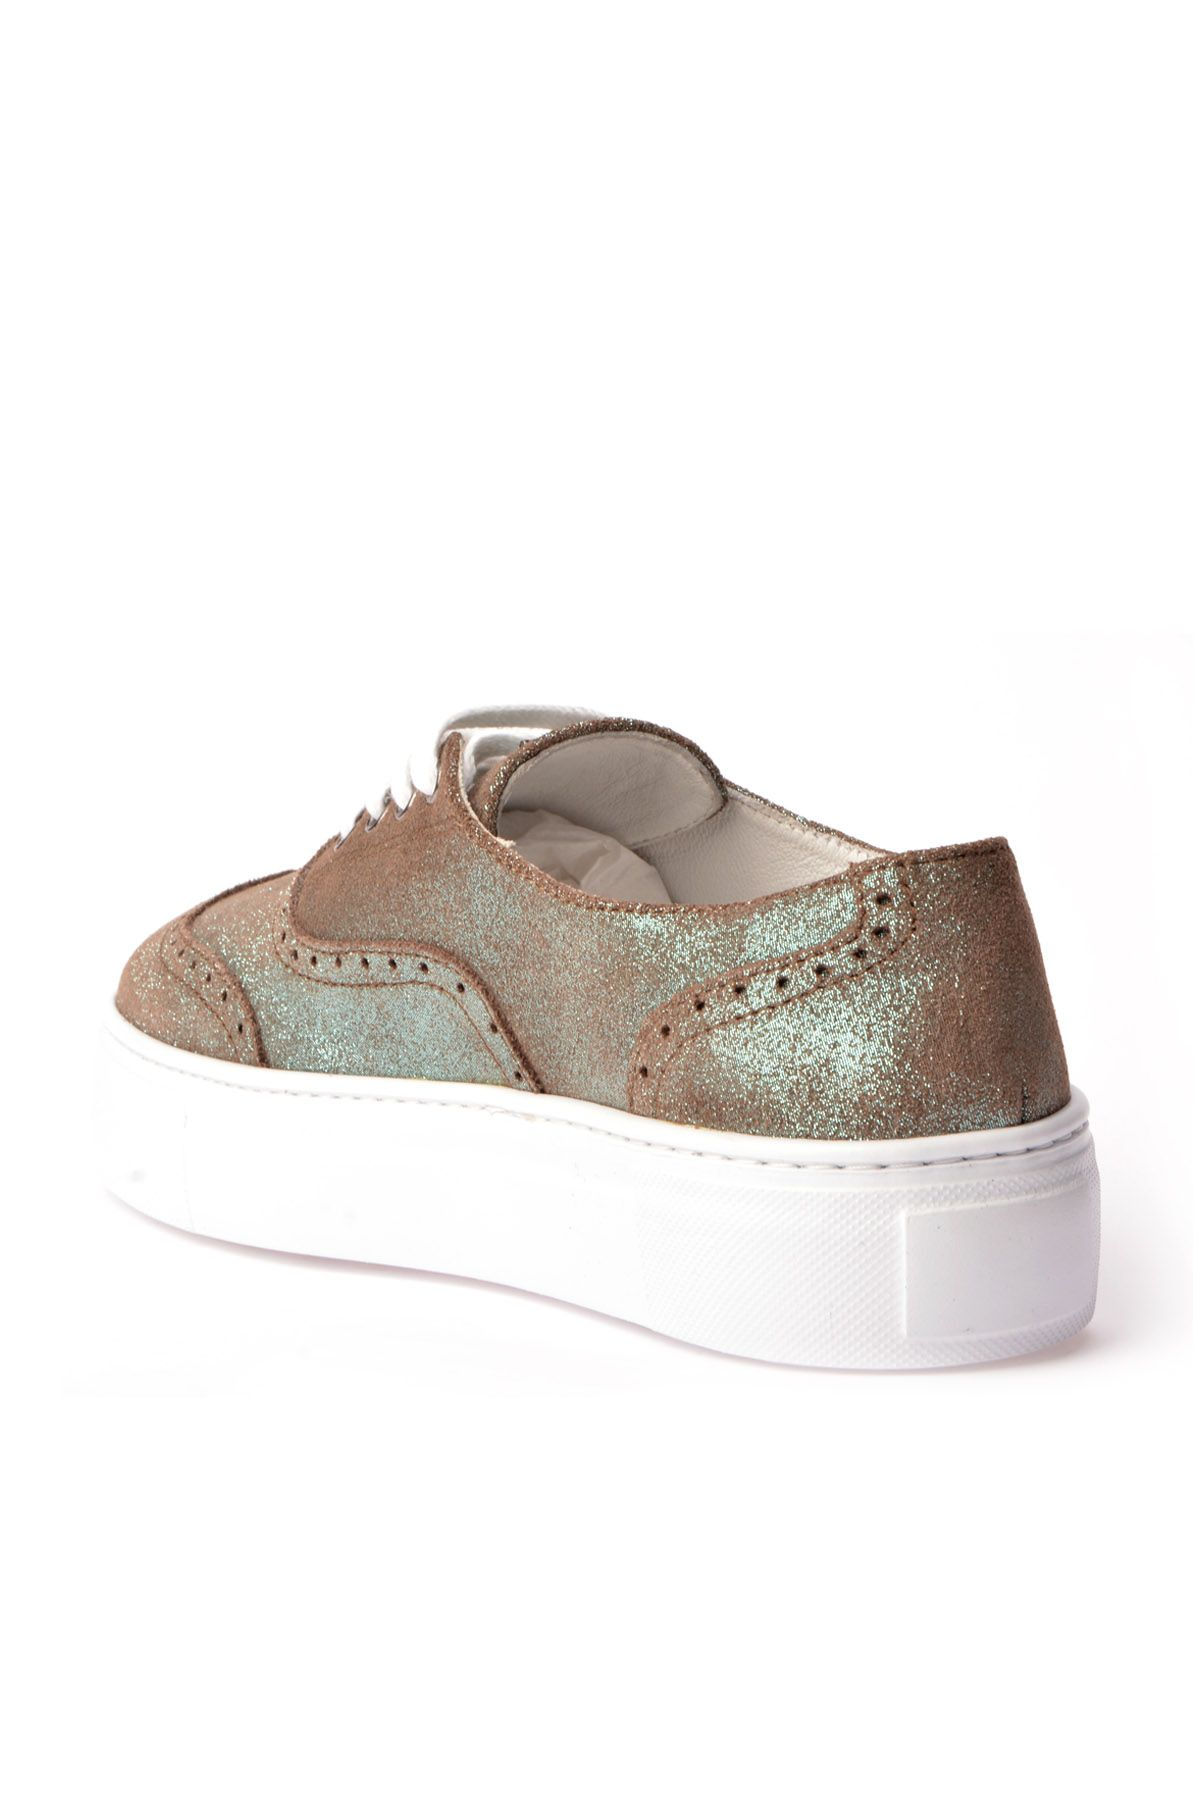 Pegia Chatalet Oxford Shoes From Genuine Leather Mint